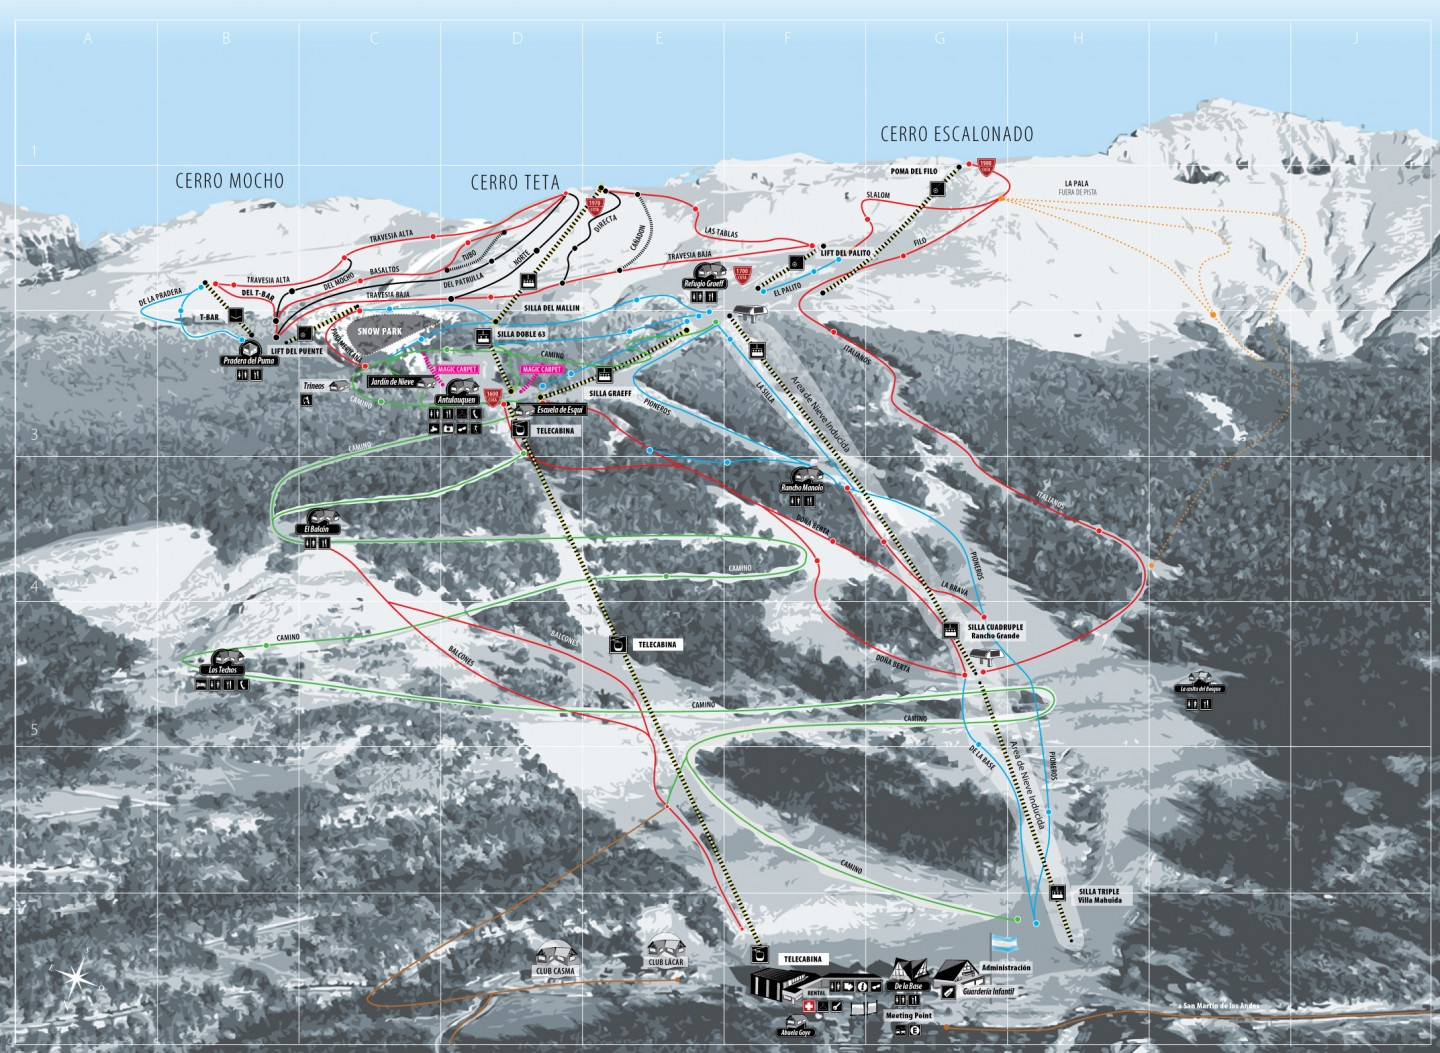 Second fire at Chapelco Ski Resort within a couple of weeks. Ski Map of Chapelco ski resort.